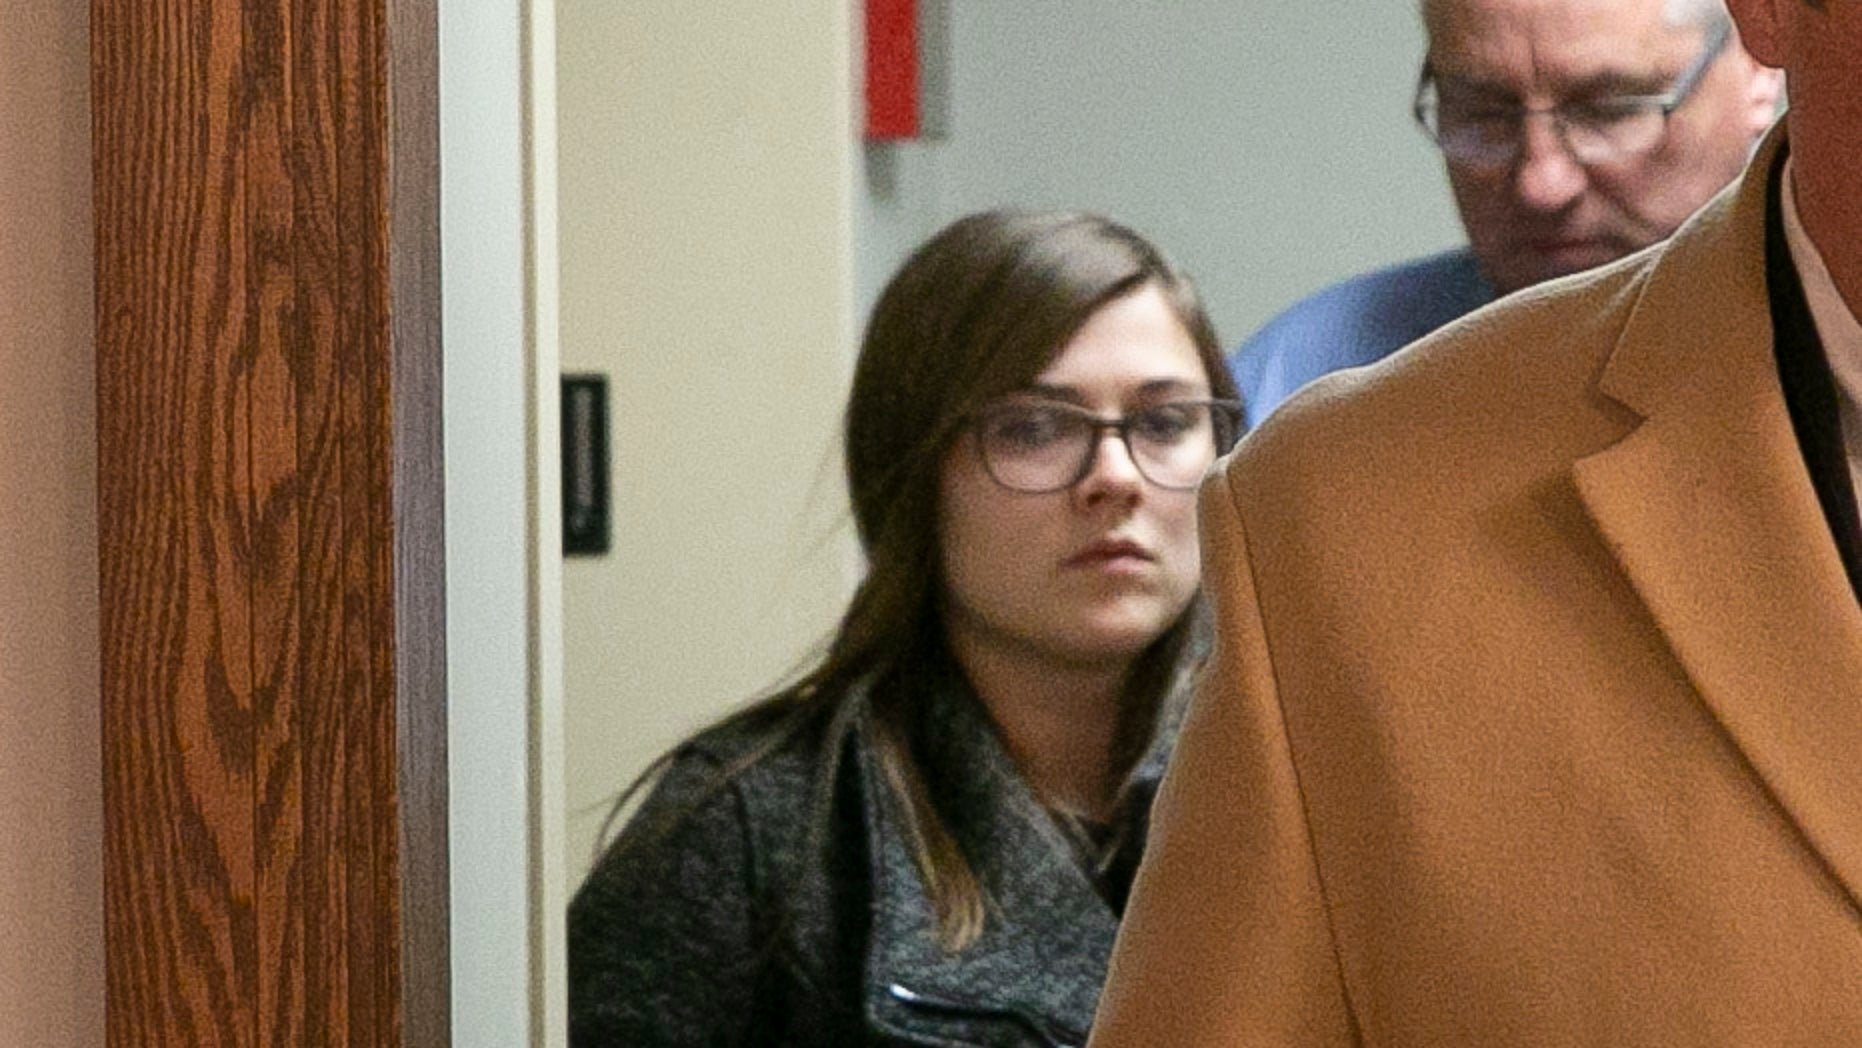 Alyssa Shepherd leaves the Fulton County Courthouse after her initial court appearance on Thursday, Nov. 15, 2018, in Rochester, Ind. Shepherd is accused of striking and killing three children with a pickup truck as they crossed a highway to board a school bus. (Santiago Flores/South Bend Tribune via AP)